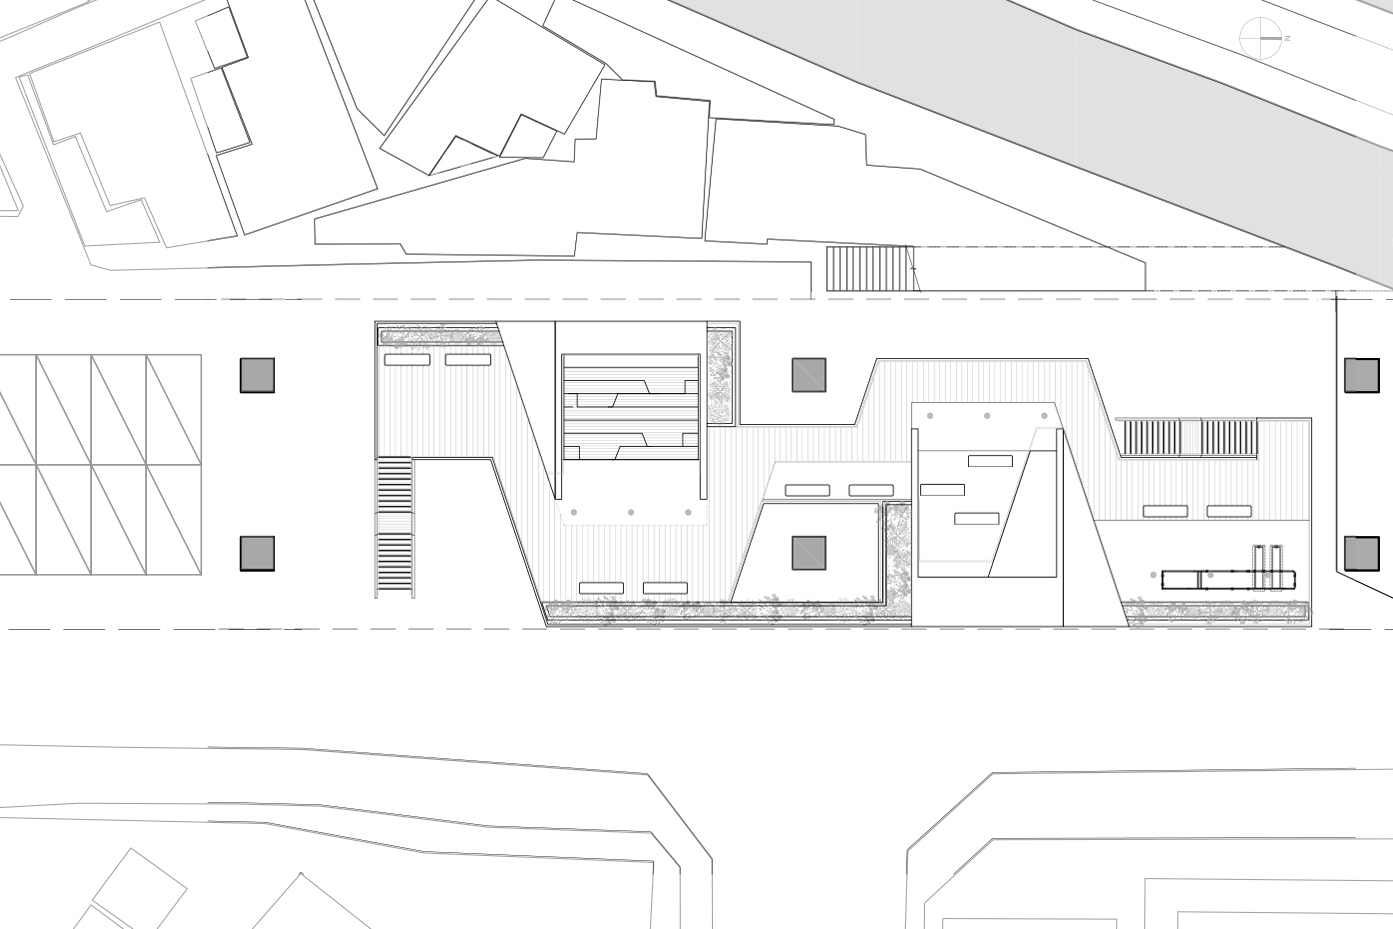 7_Roof_Square_drawing_02.jpg